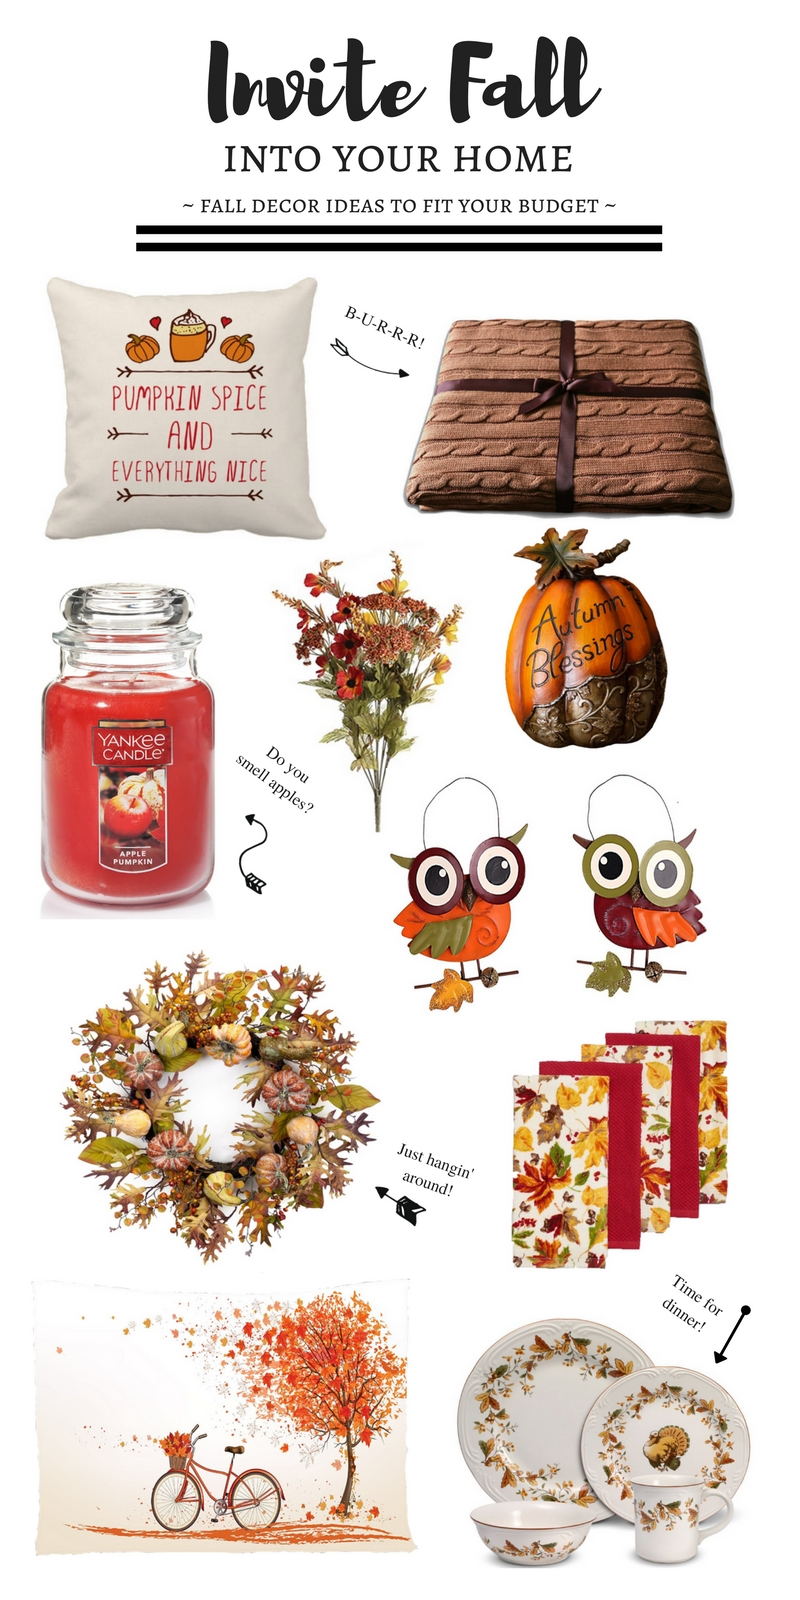 Fall Decor Ideas on a Budget - Fall decorations don't have to be expensive and break the bank.  Here are some great ideas for cute fall decorations that will help you get into the season.